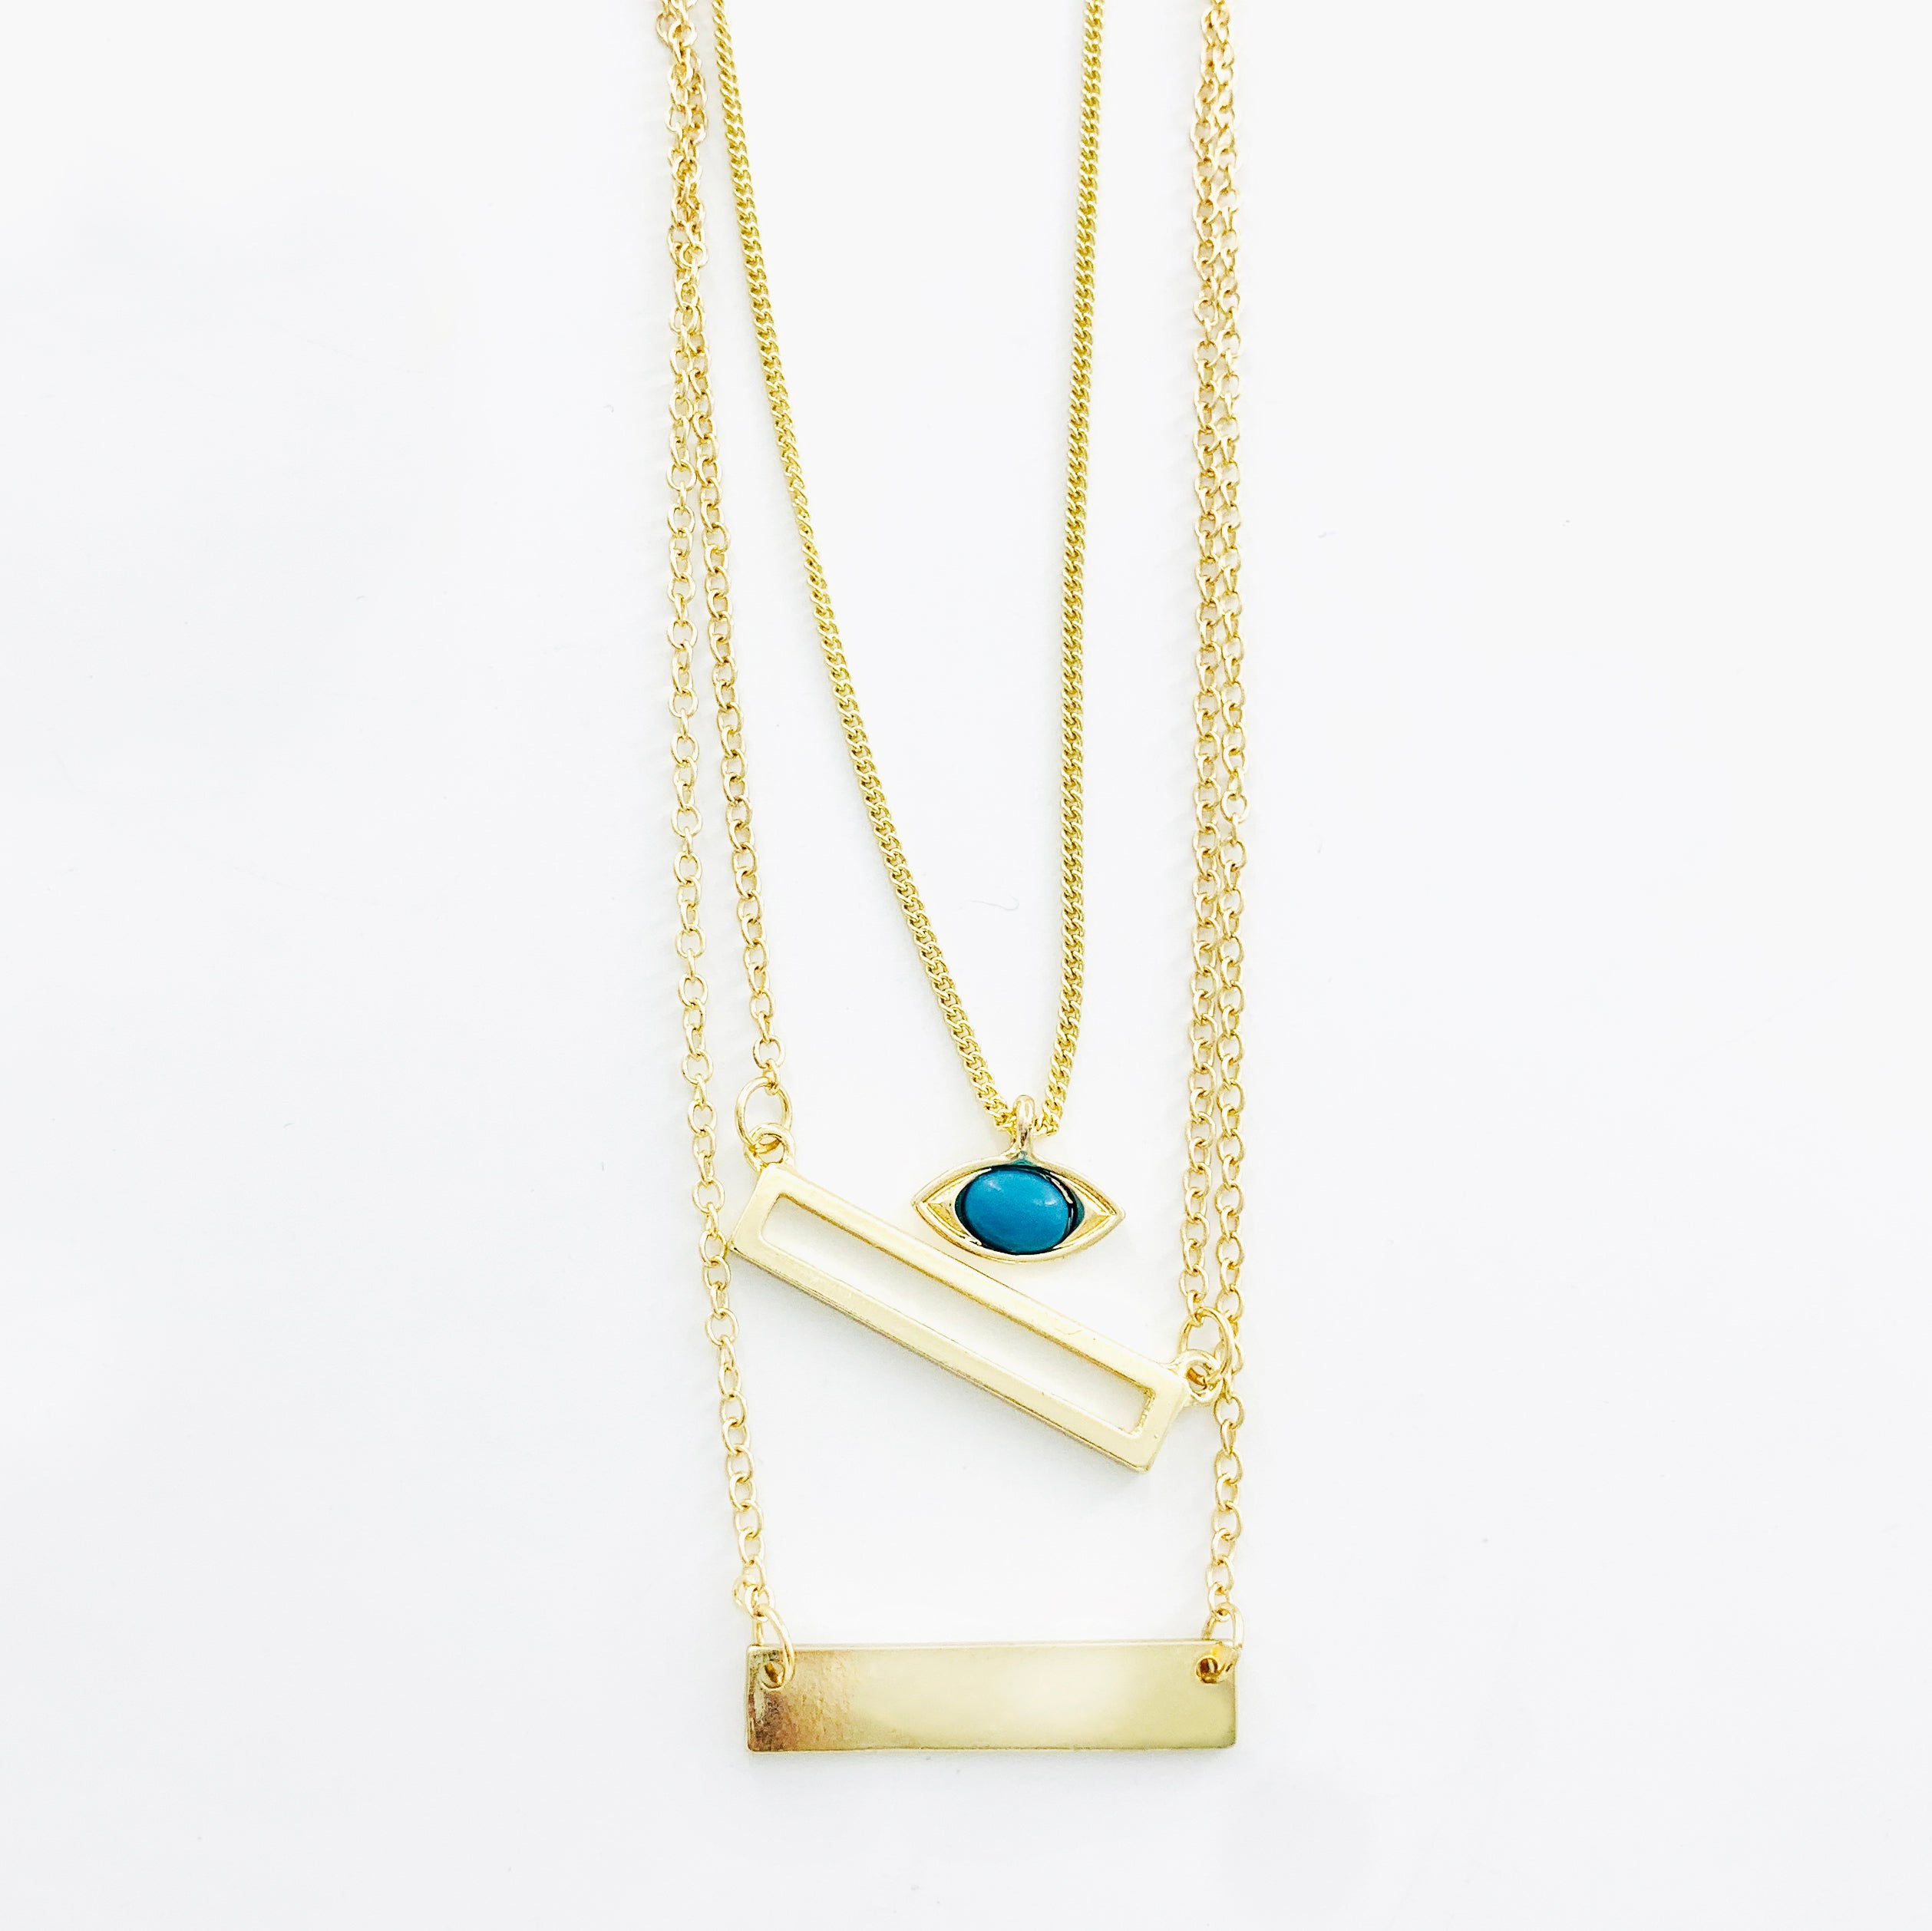 Necklace - Blue Turquoise Eye Pendant on Triple Gold Chain